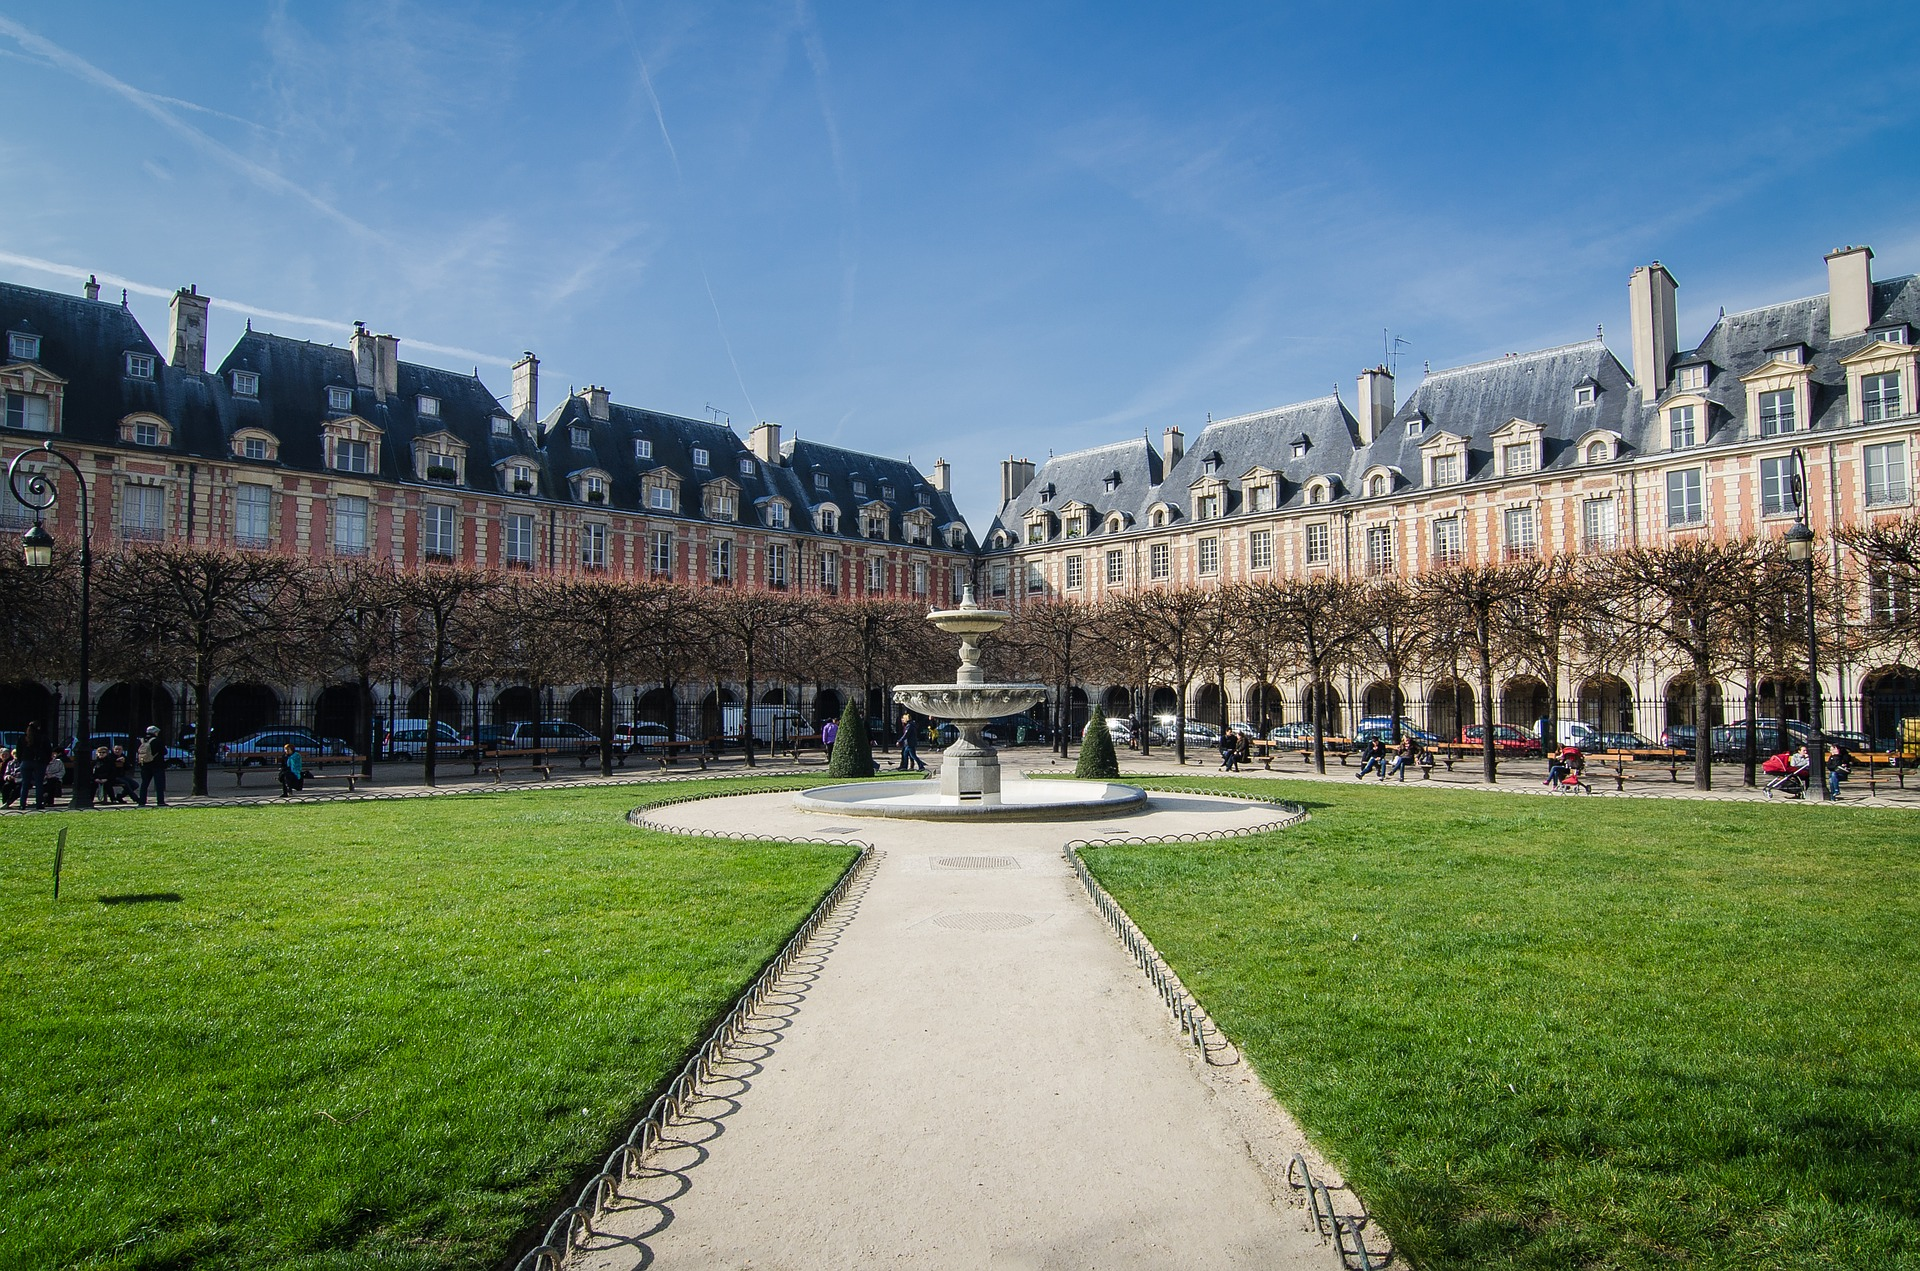 Le Marais - Straddling the 3ème and 4ème arrondissements (districts), Le Marais is one of Paris' oldest and coolest districts – so cool, in fact, that French writer Victor Hugo (author of